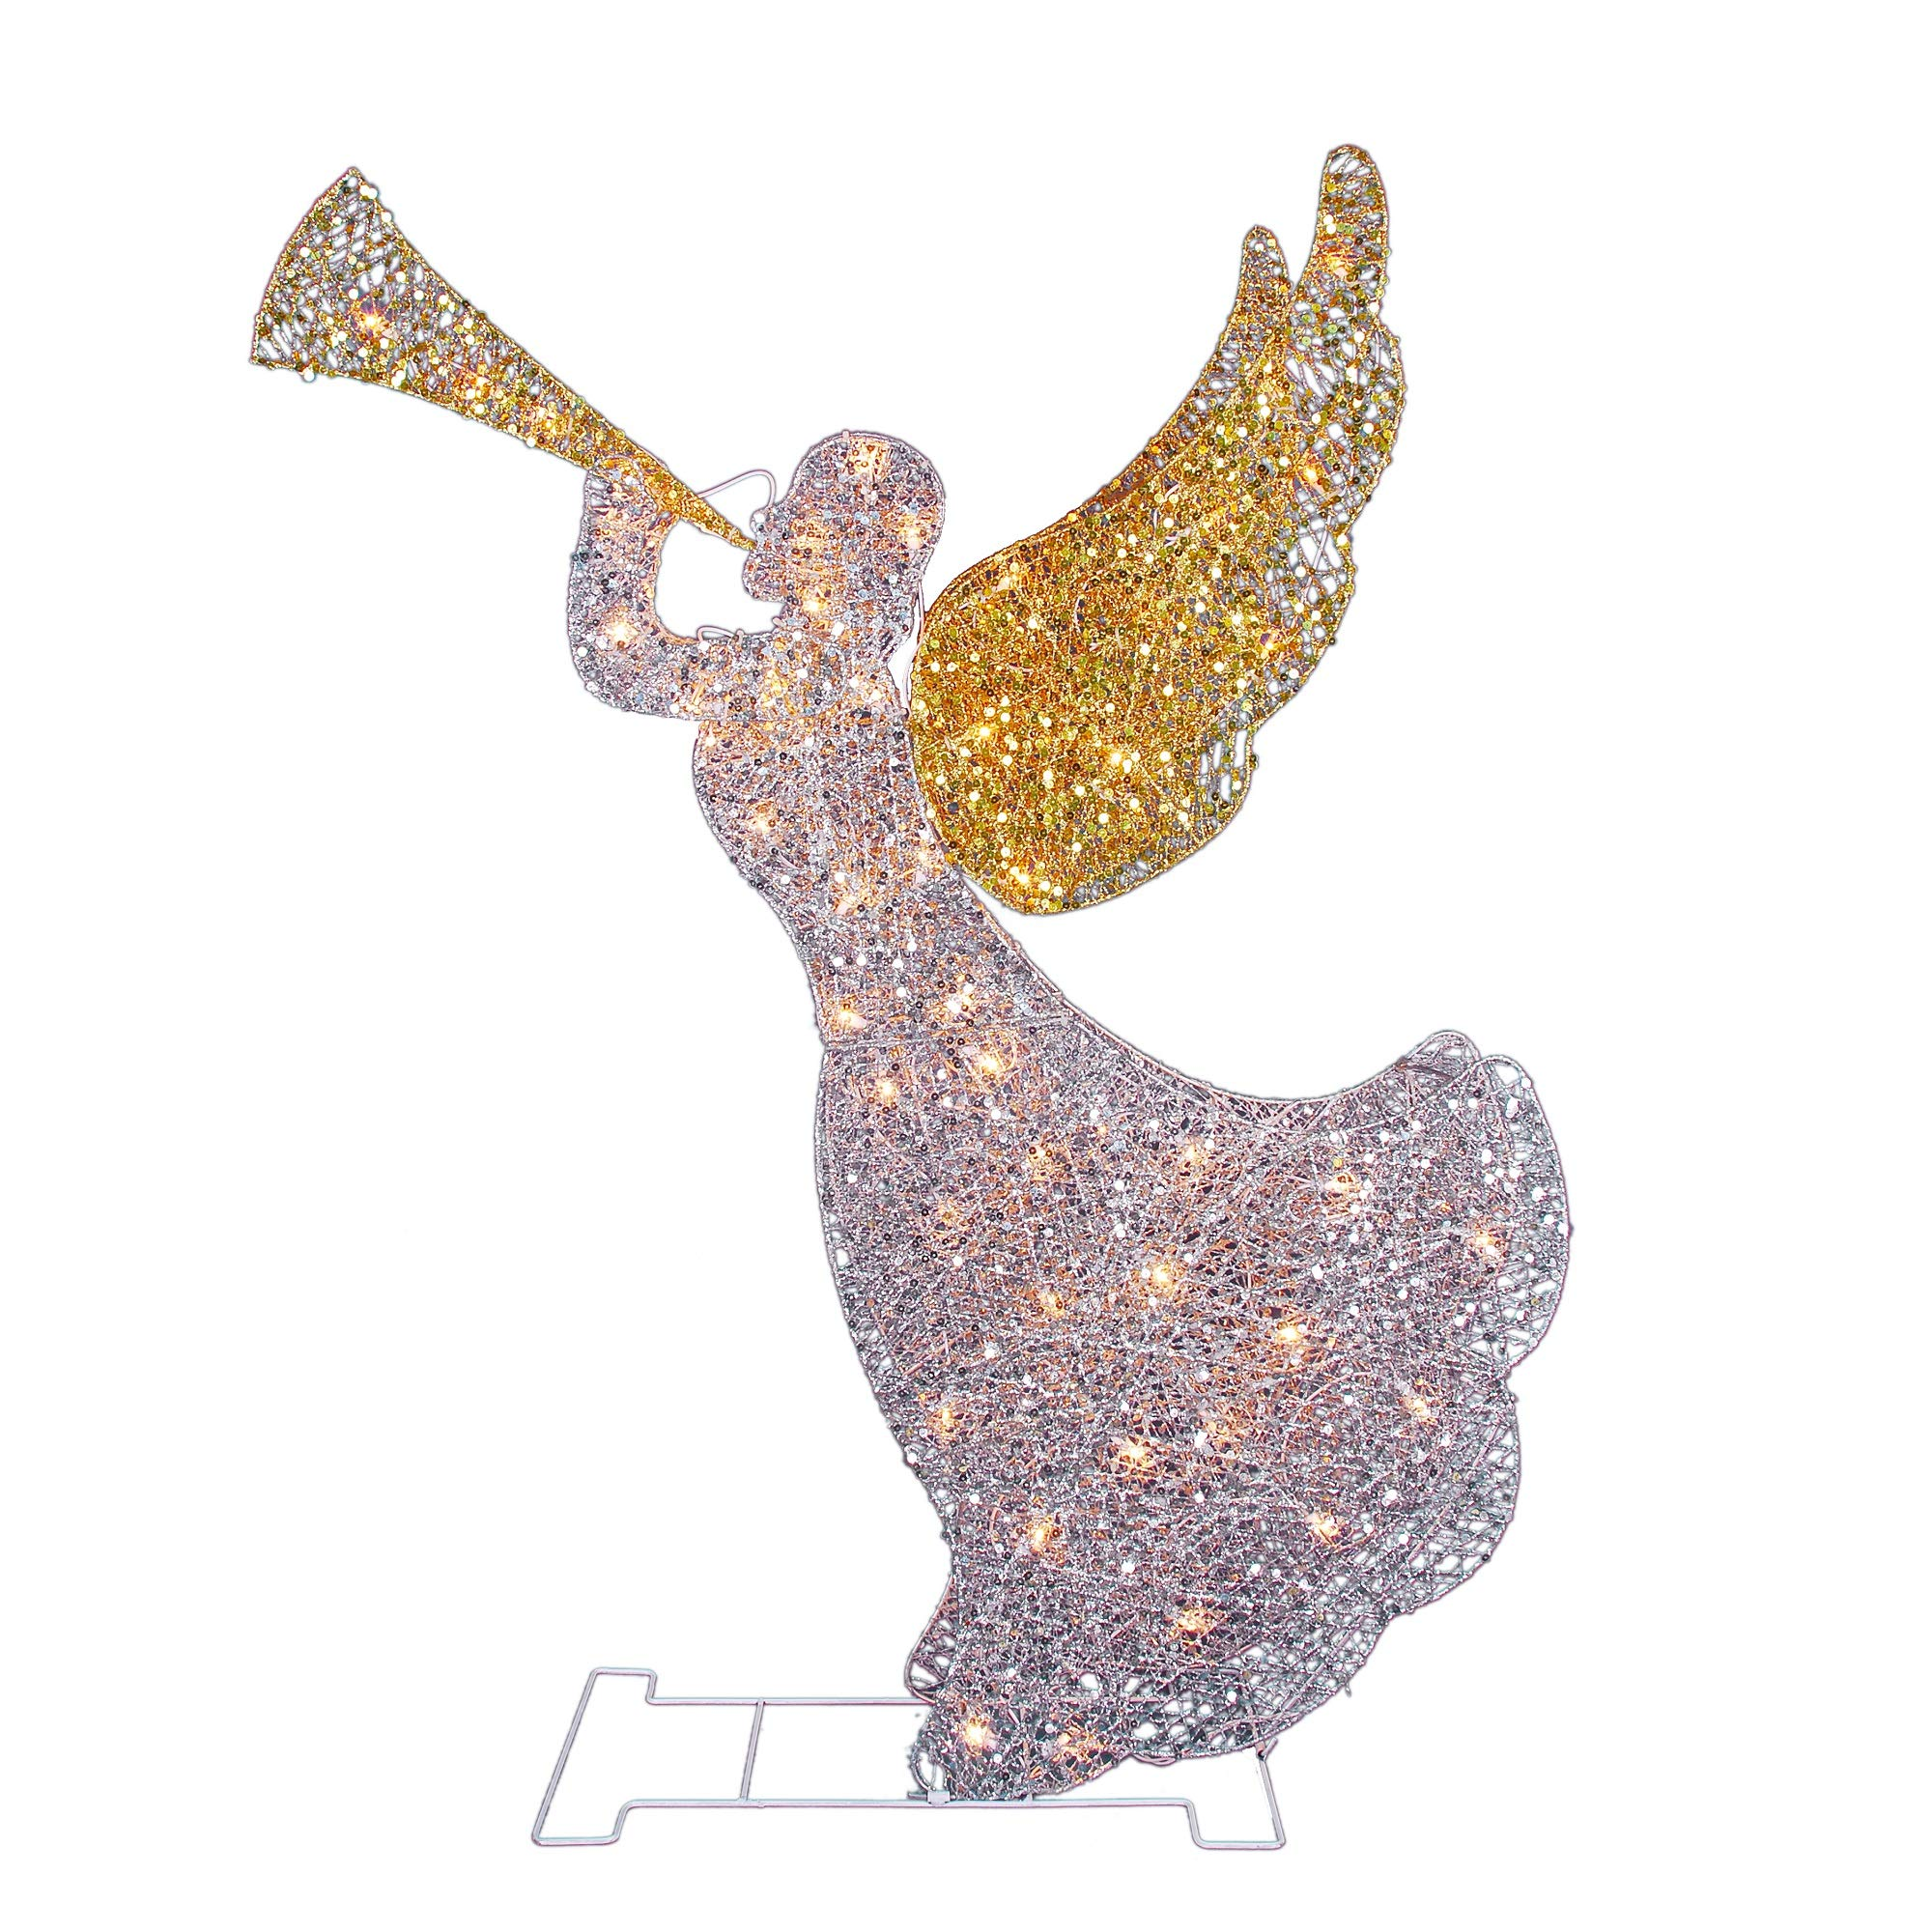 Northlight 46'' Lighted Glitter Sequin 3-D Angel with Trumpet Christmas Outdoor Decoration - Clear Lights